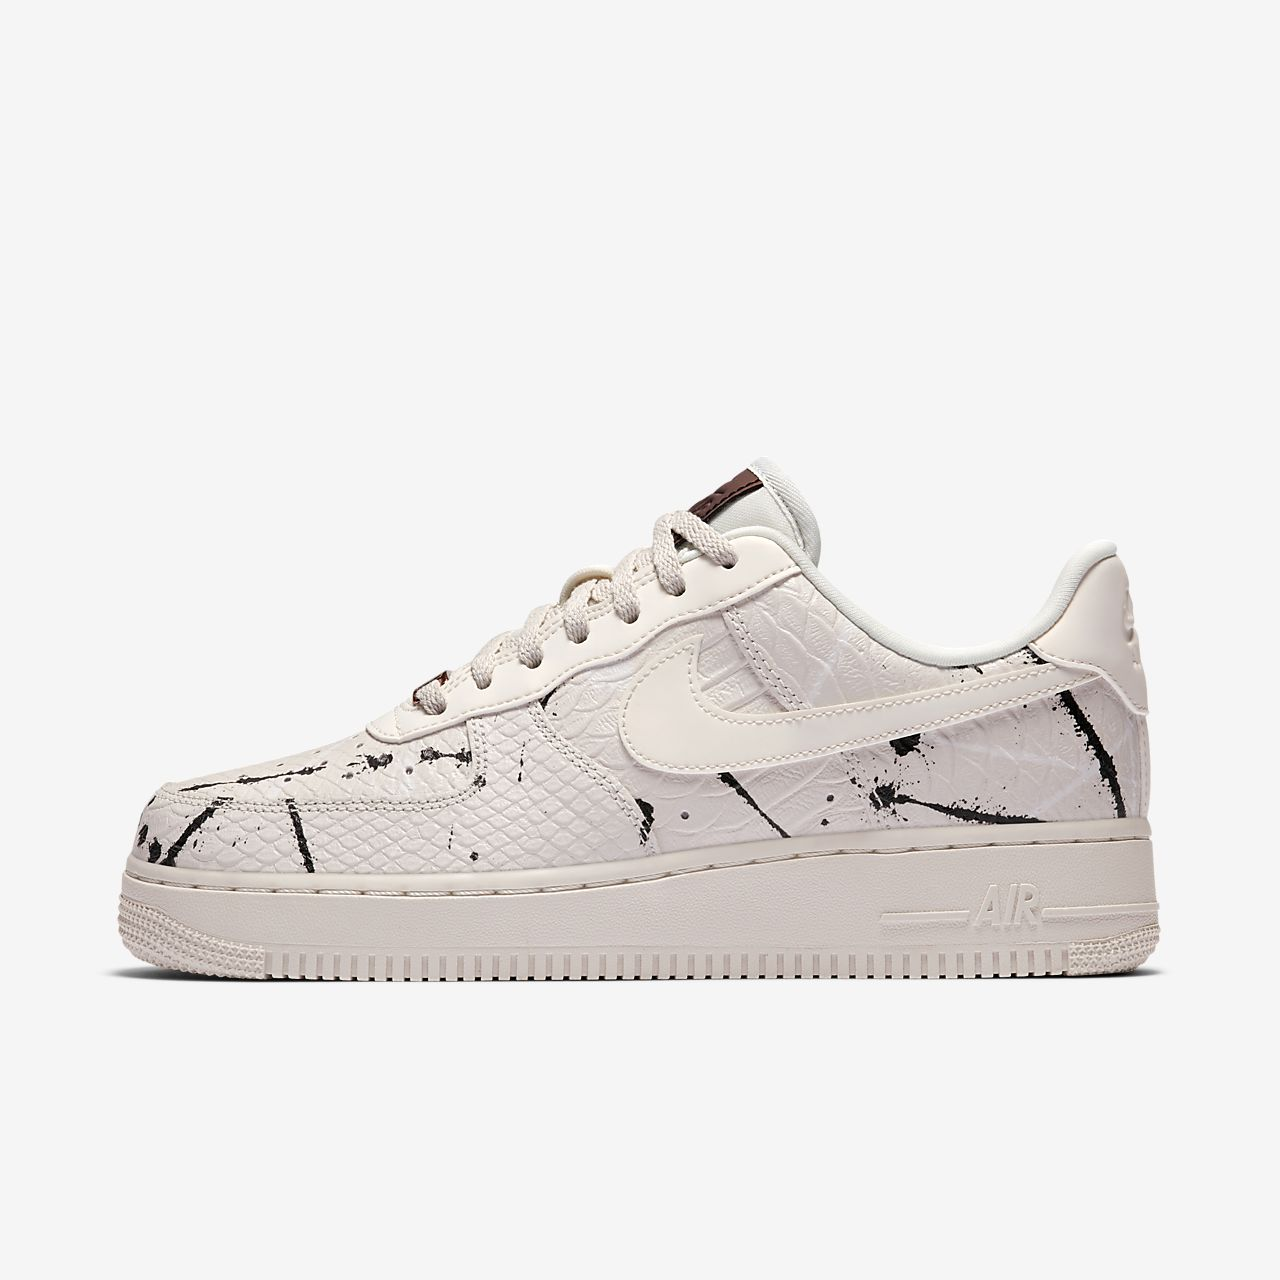 ... Nike Air Force 1 '07 LX Women's Shoe